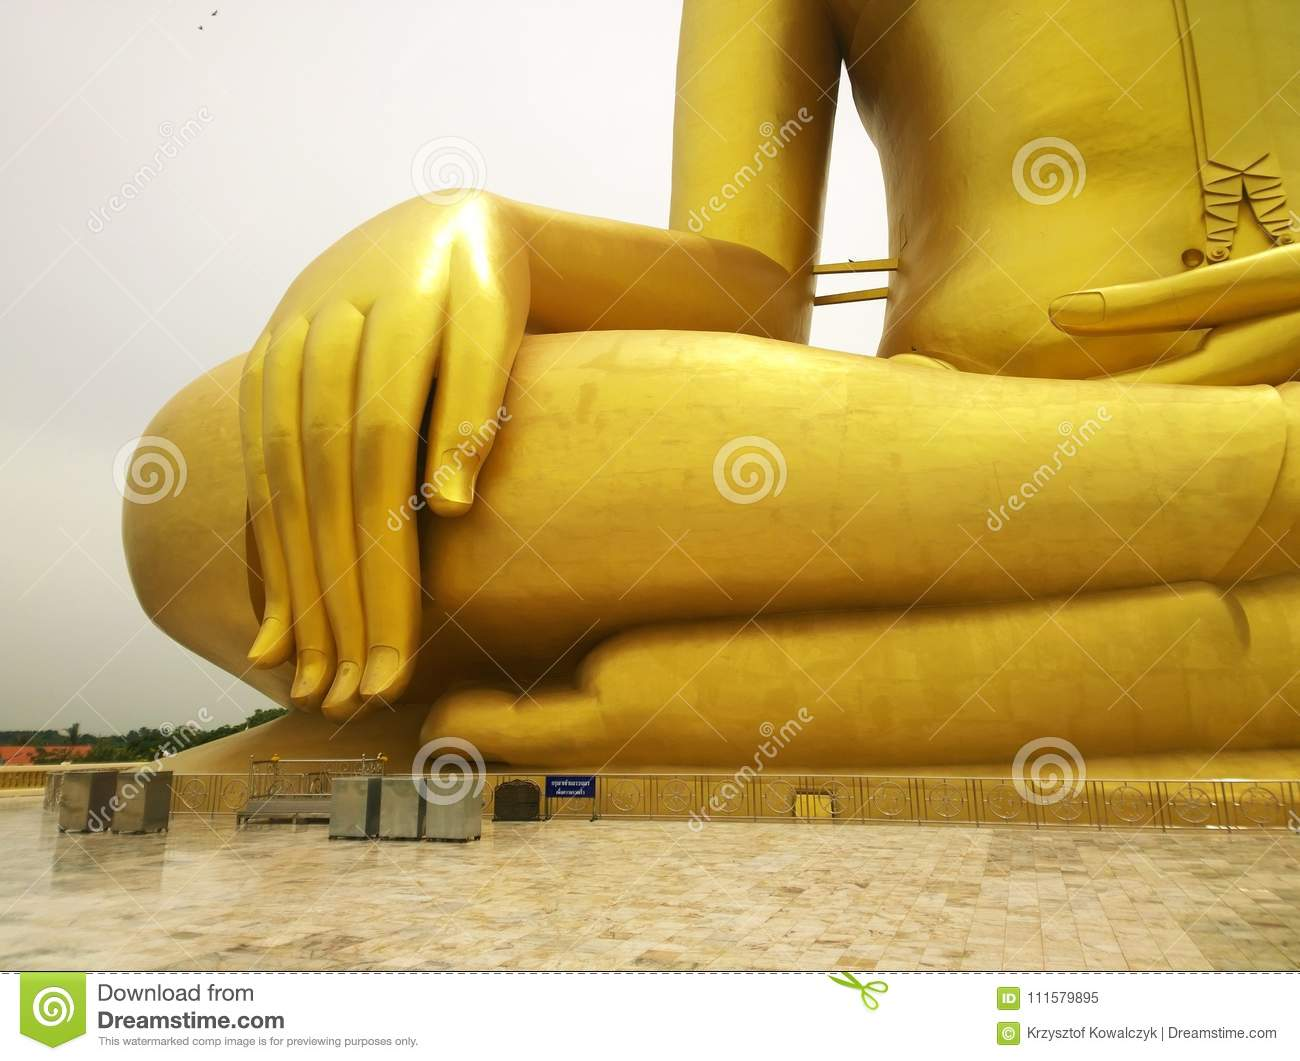 Large golden buddha statue with his big hand and fingers at WAT MUANG Muang Temple Ang Thong Province, THAILAND